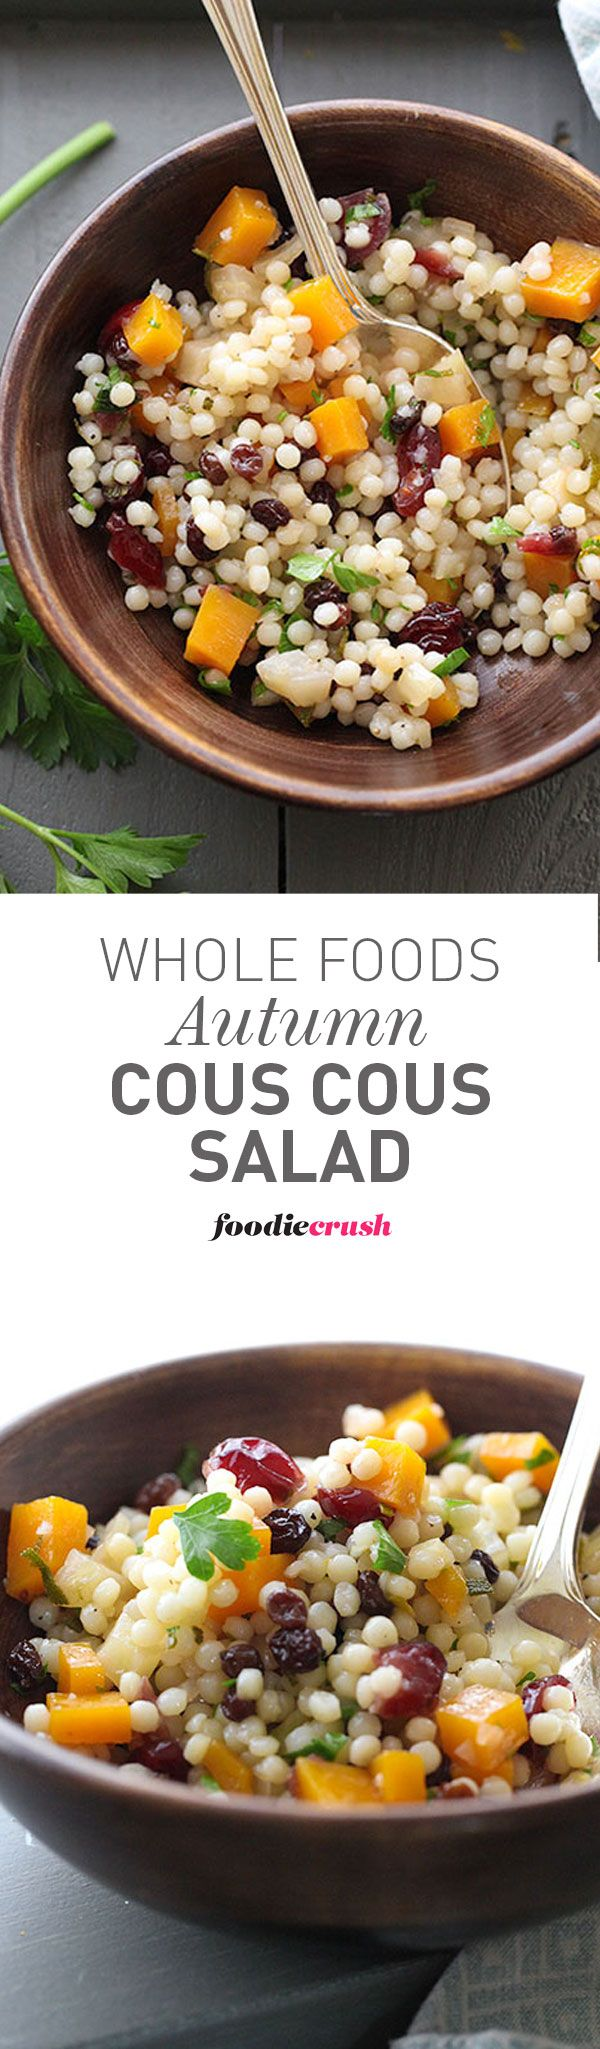 Say hello to butternut squash and fall flavors touched by a tart pucker in this easy Whole Foods Market-inspired Autumn Couscous Salad | http://foodiecrush.com